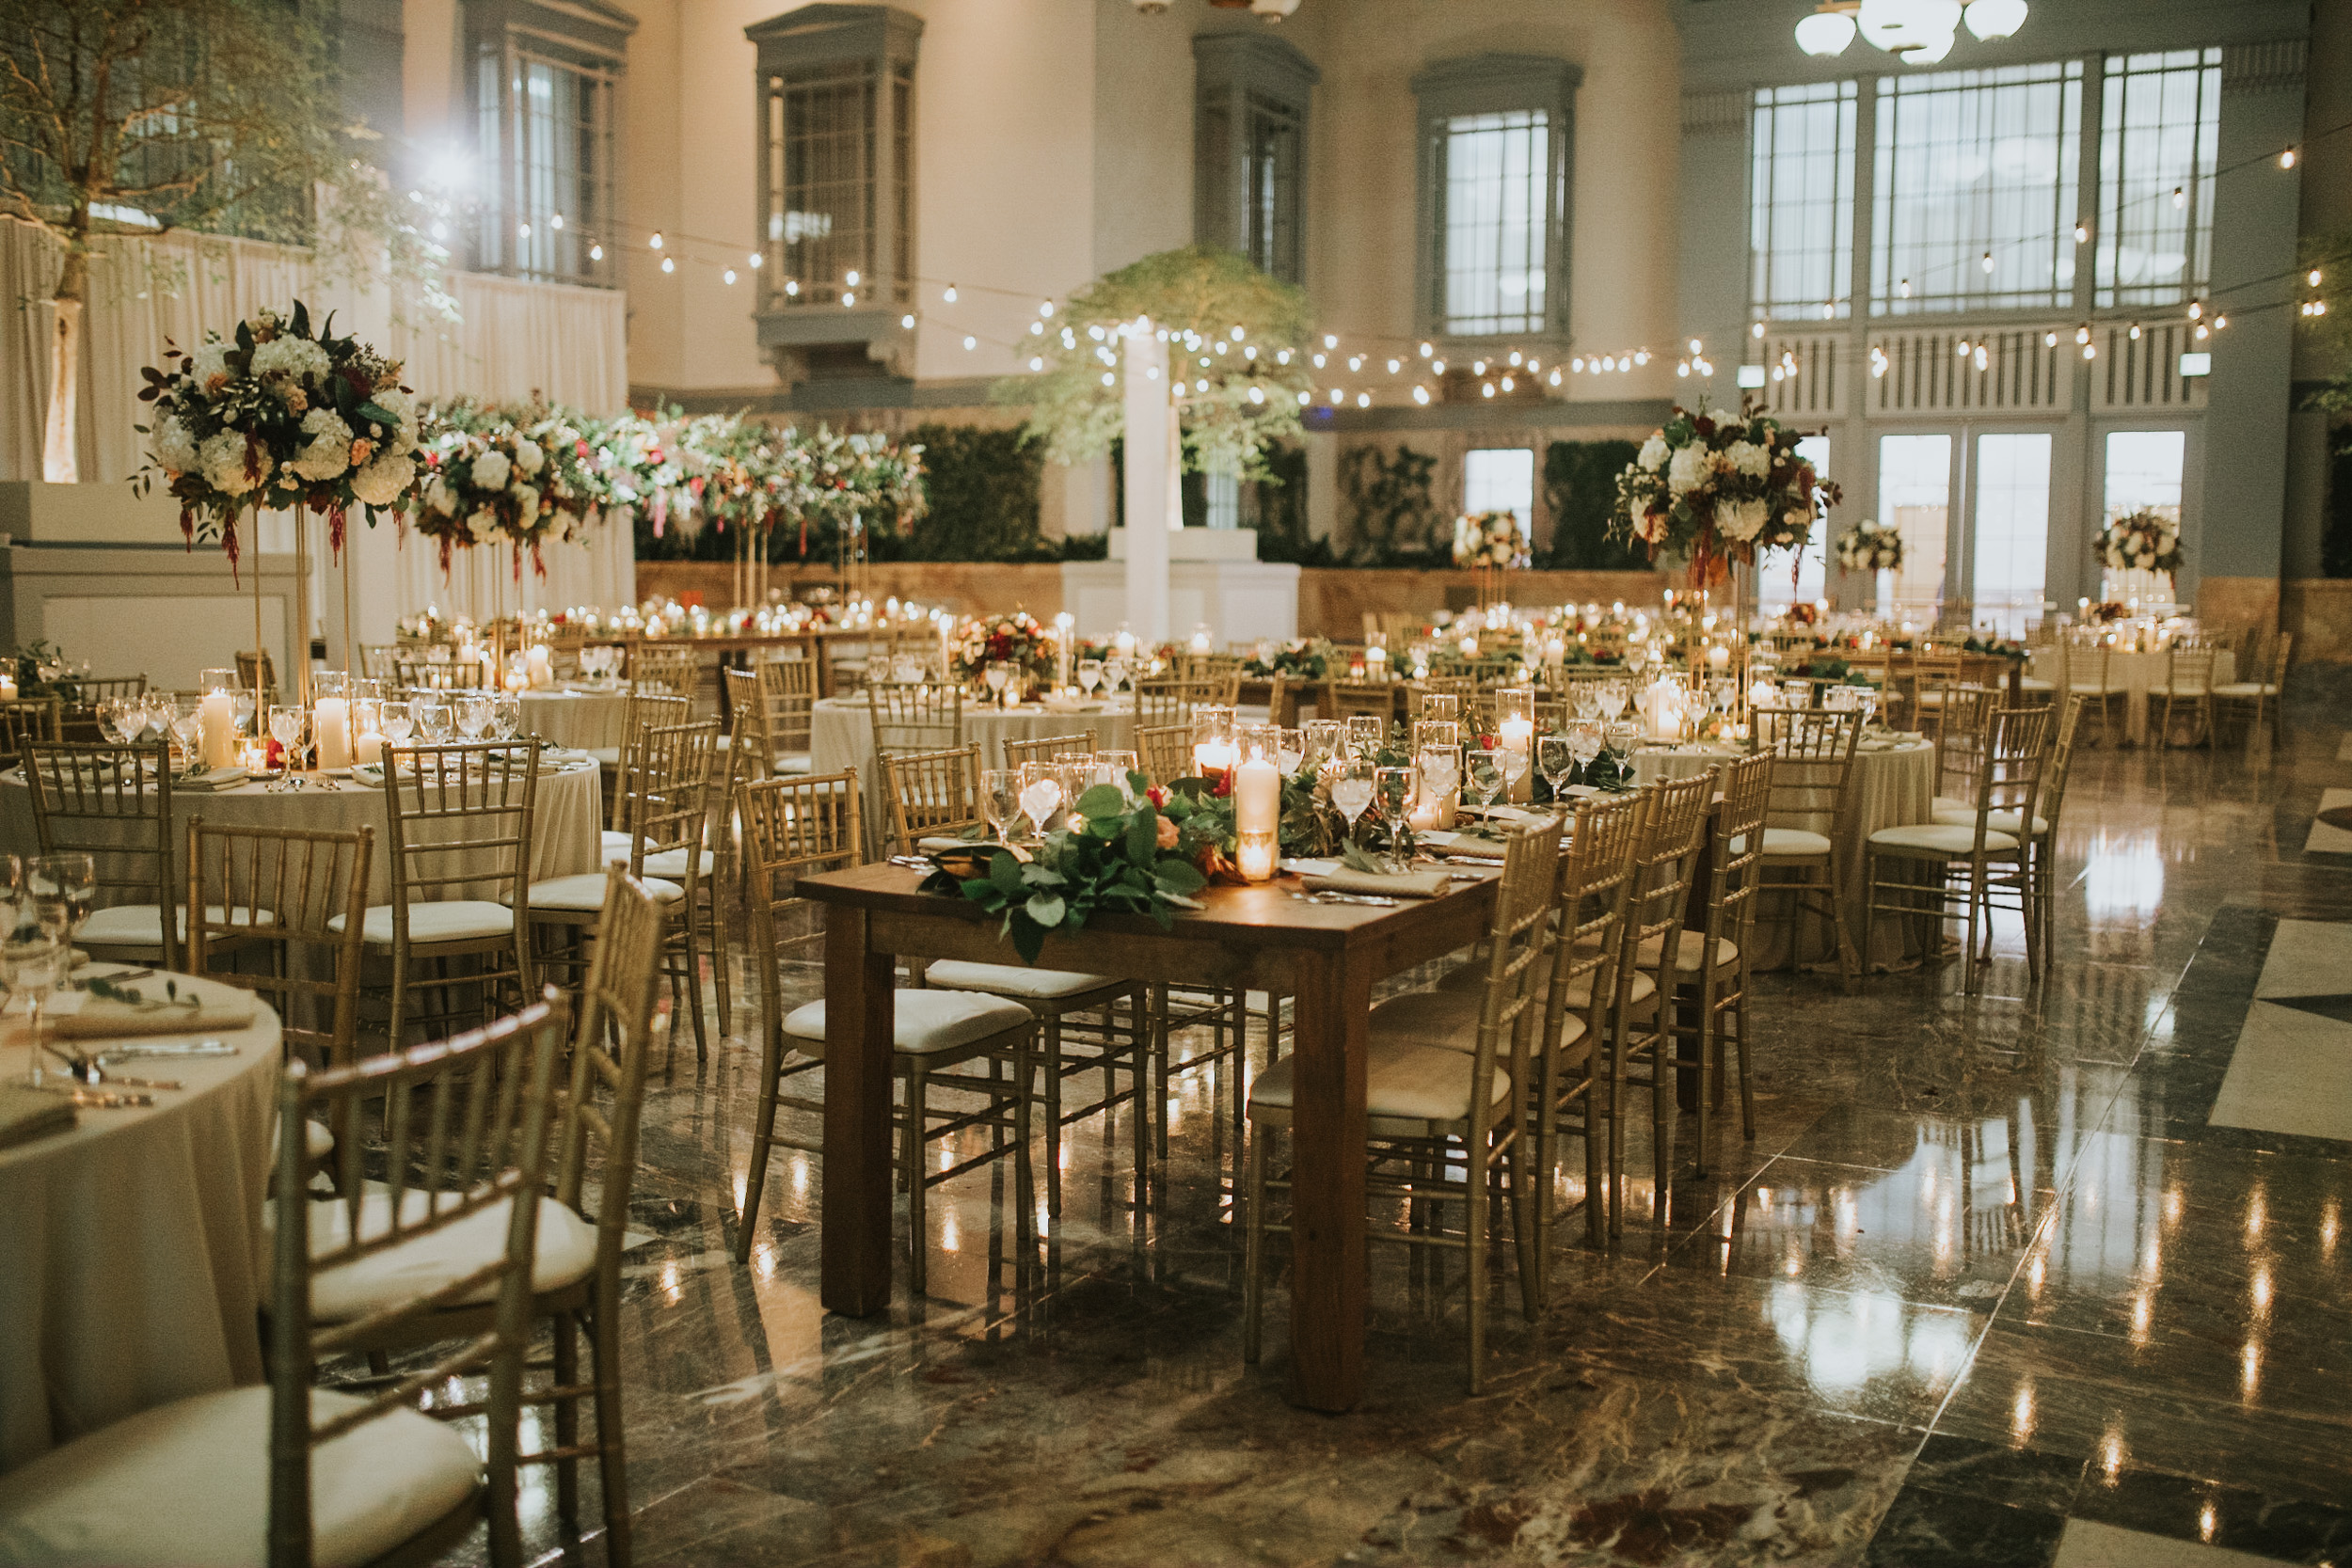 HaroldWashingtonLibraryWedding_Polly C Photography 1704191206.jpg